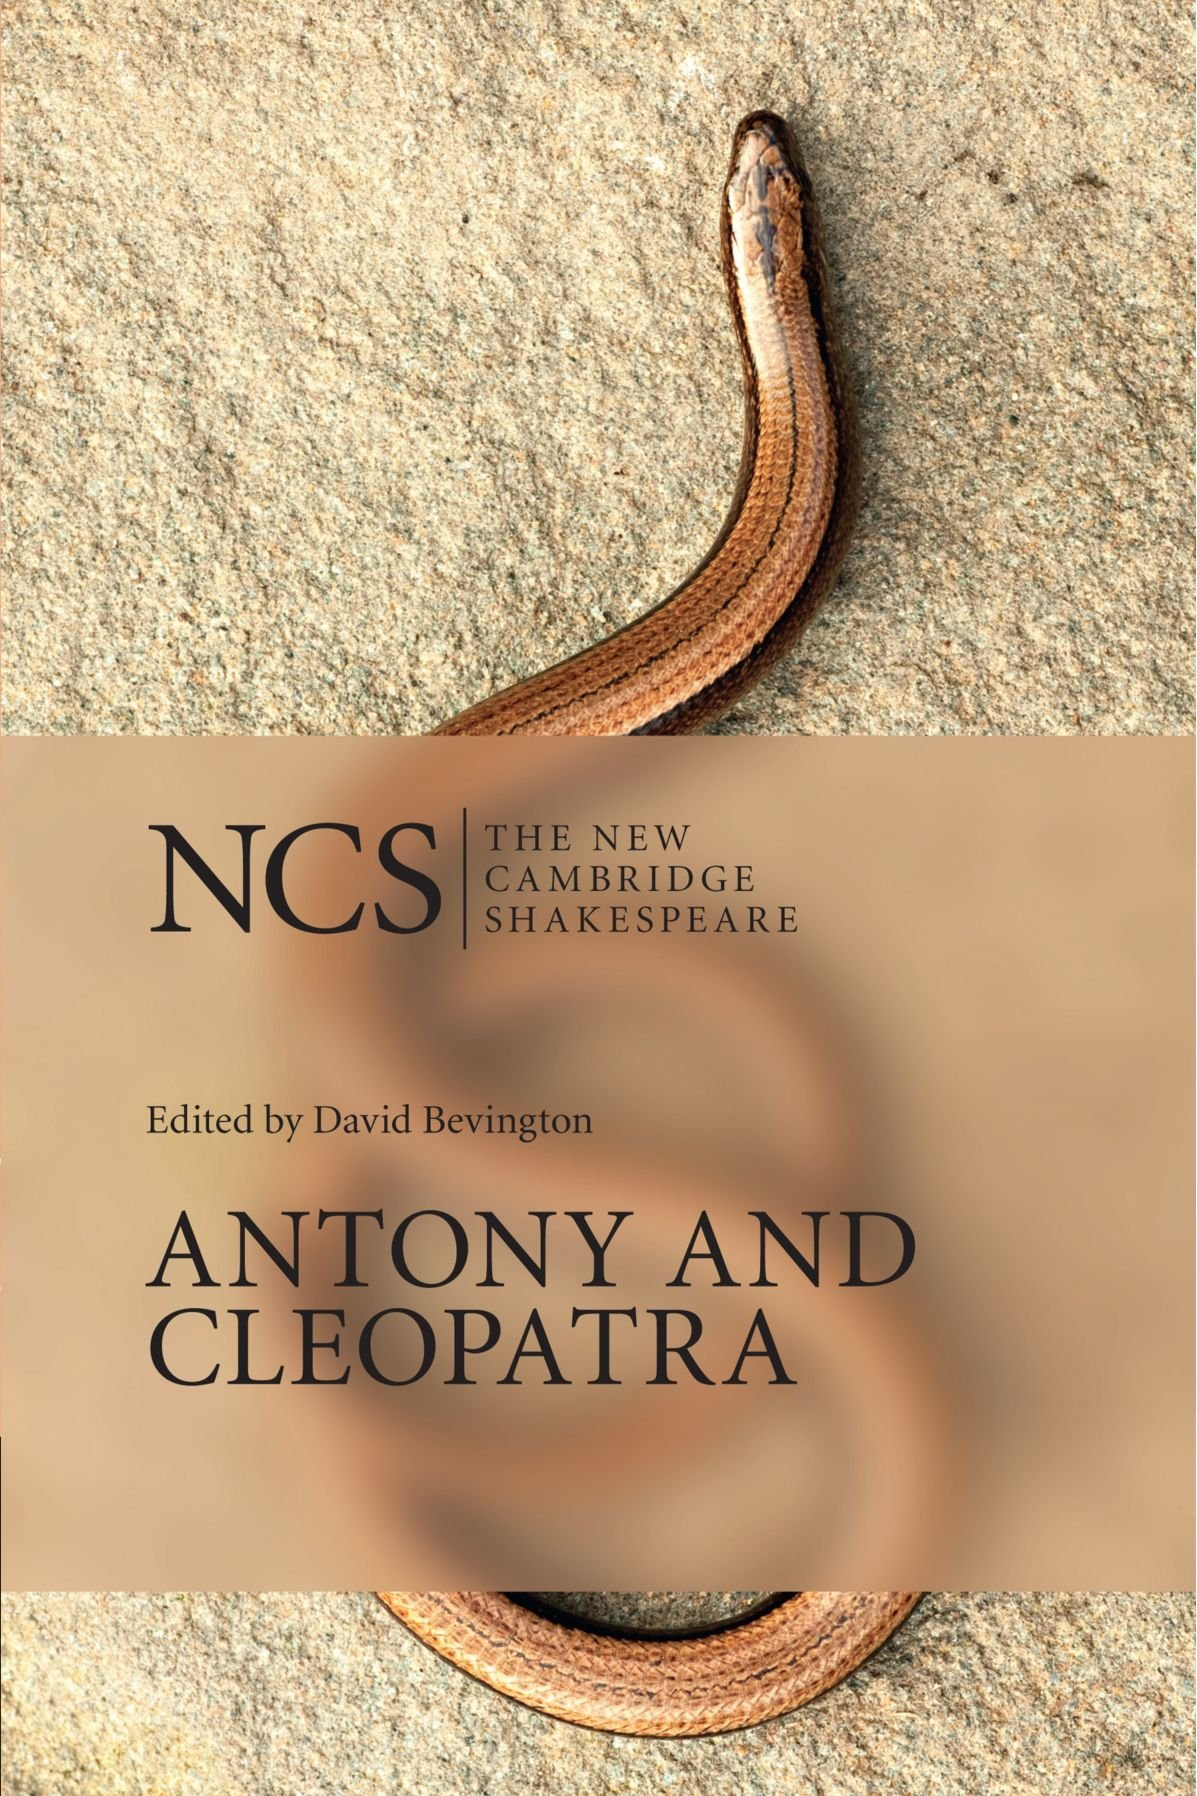 antony and cleopatra essays warehouse essay warehouse essay  antony and cleopatra the new cambridge shakespeare amazon co uk antony and cleopatra the new cambridge